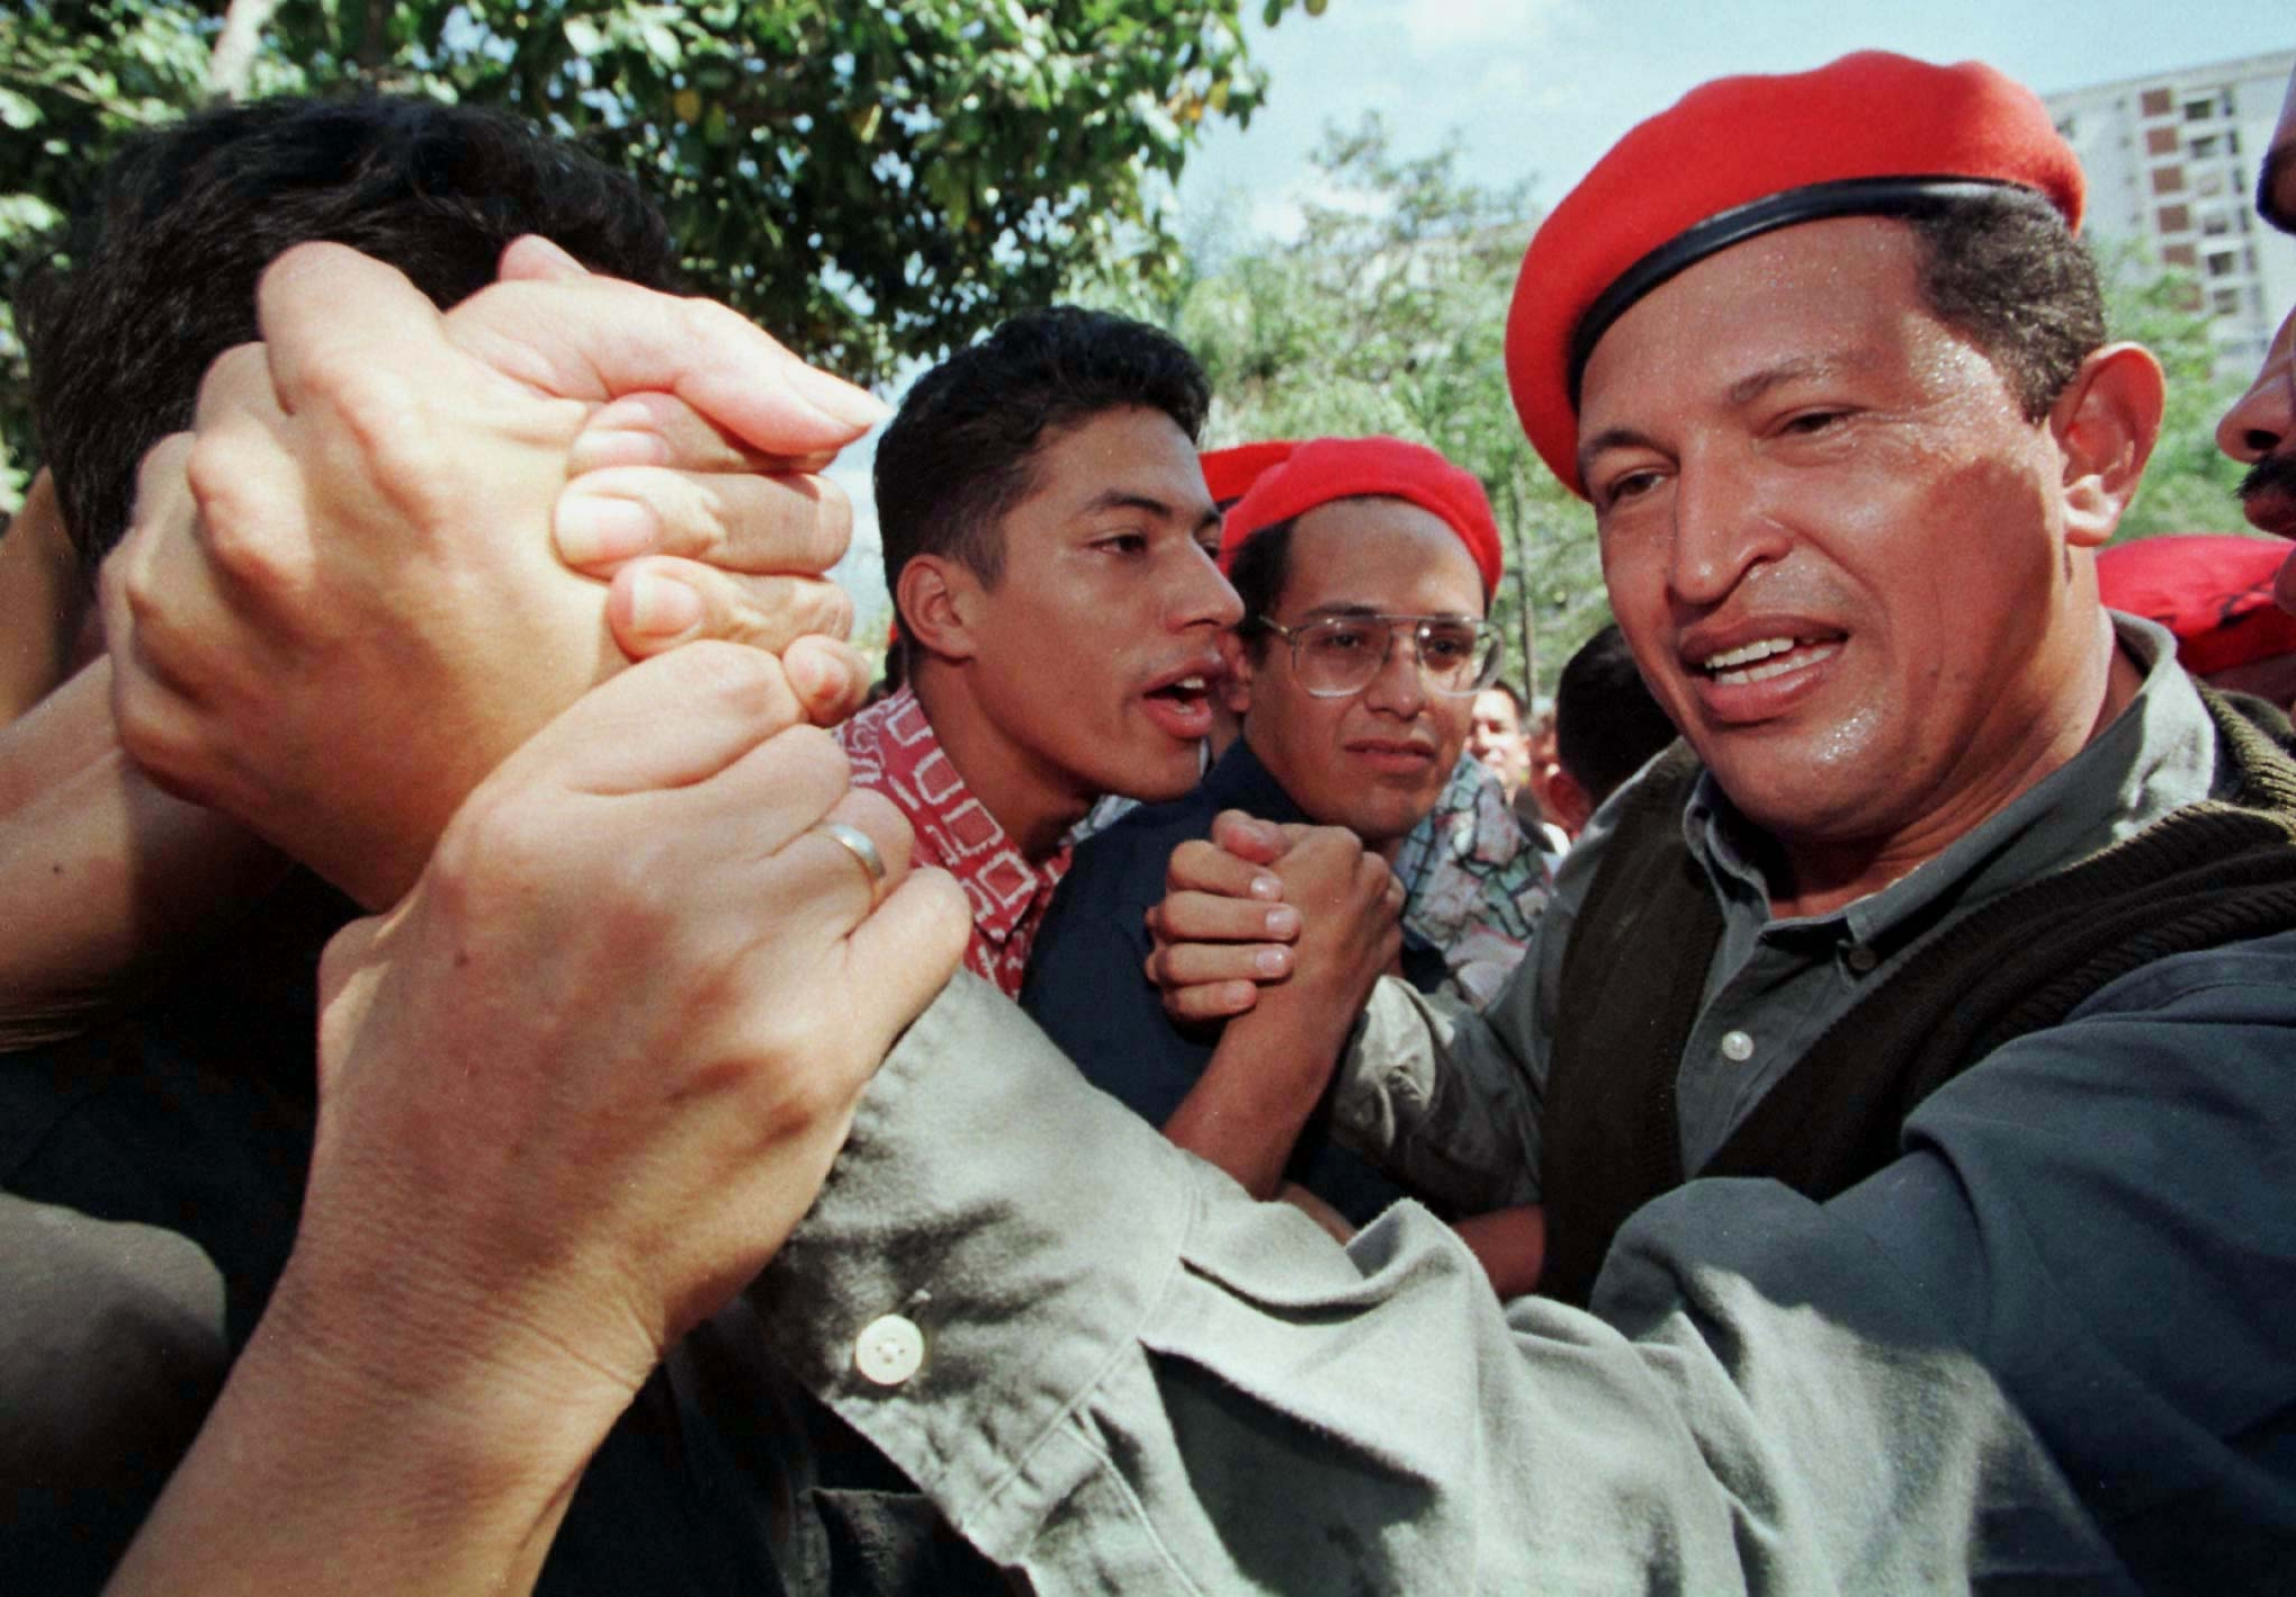 Chavez wearing red beret shakes hand of supporter